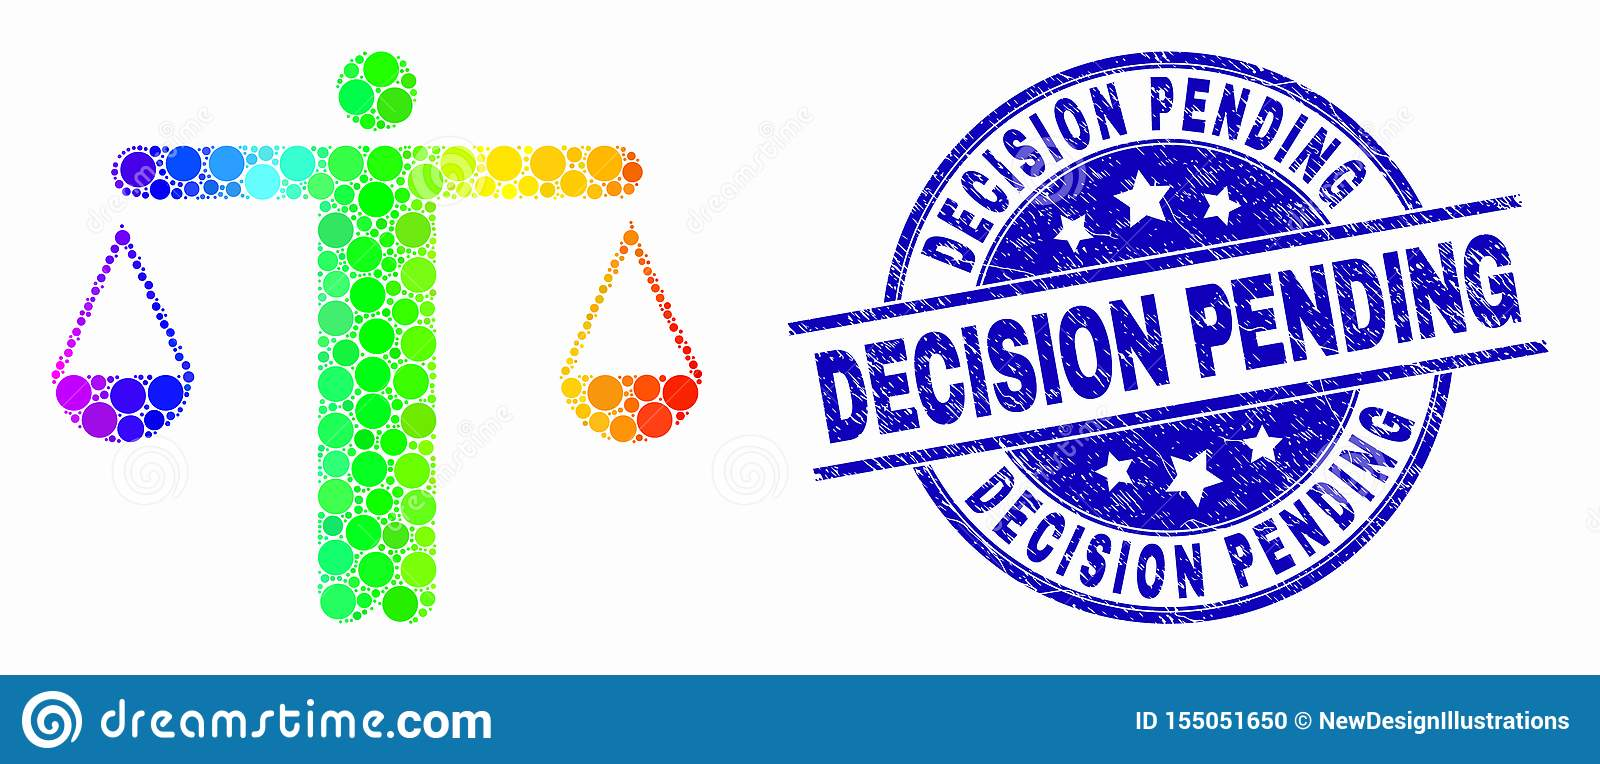 Vector Rainbow Colored Dotted Judge Icon and Grunge Decision Pending Watermark